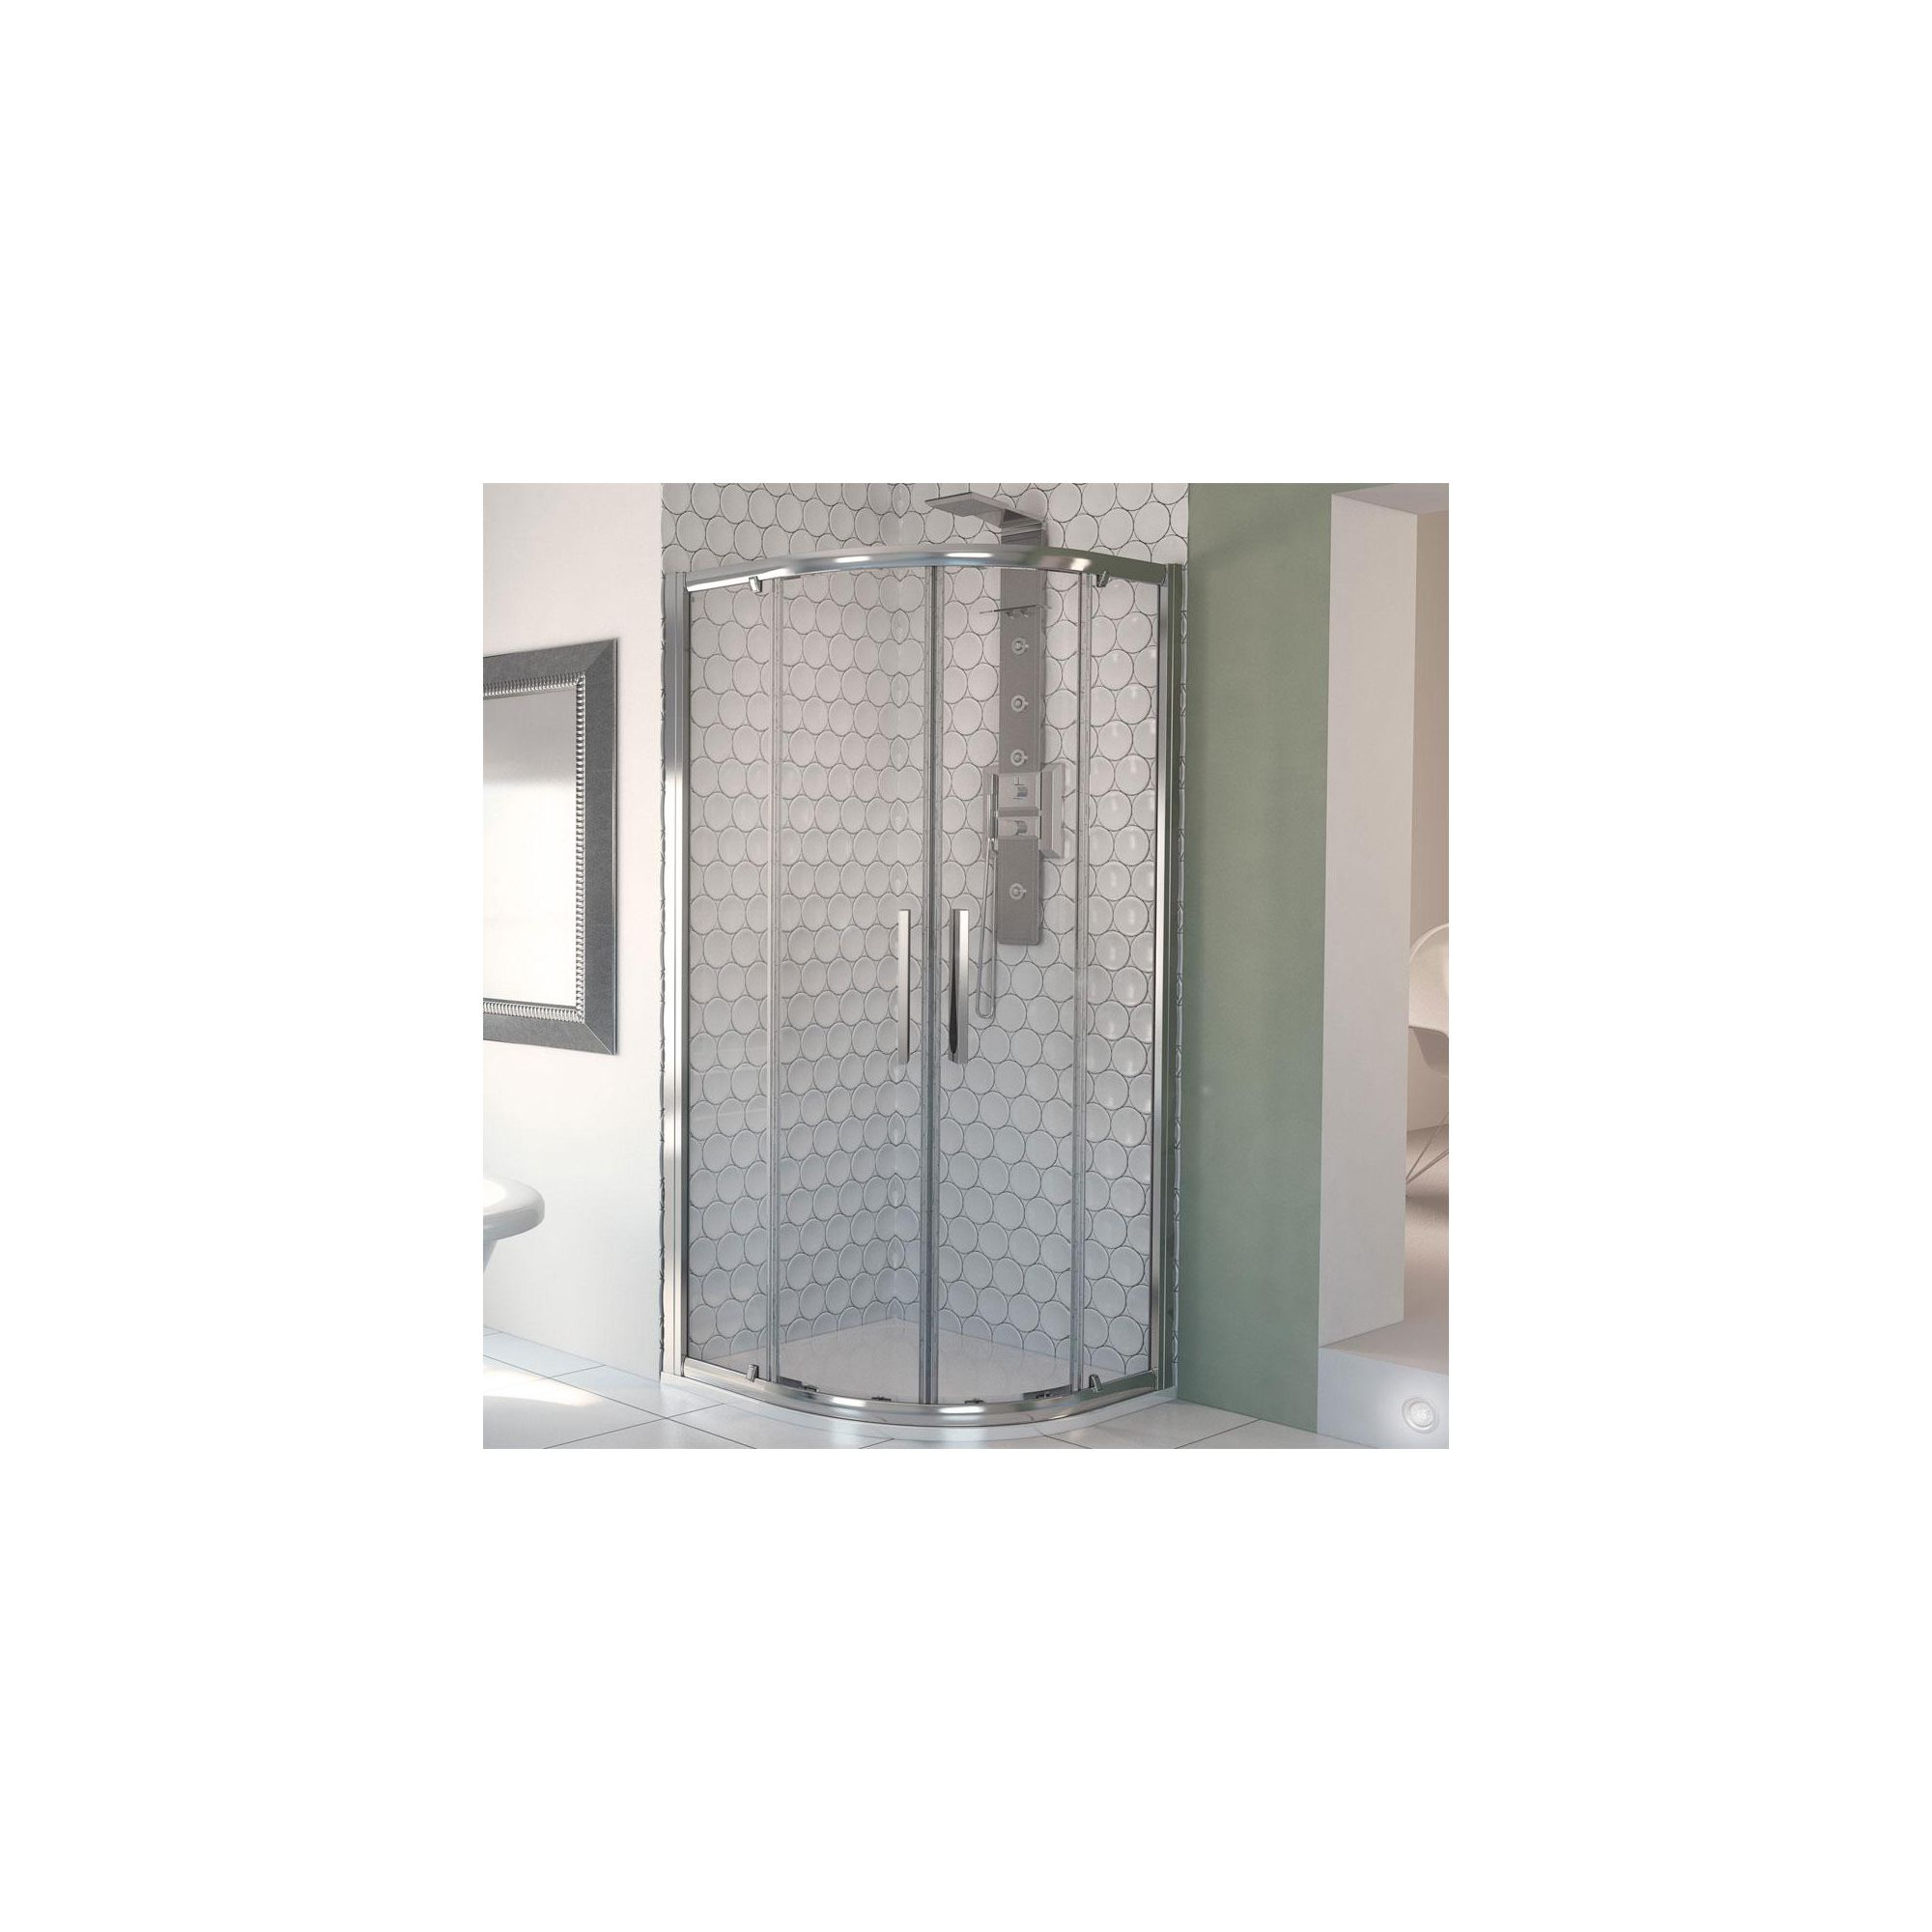 Aqualux AQUA8 Glide Quadrant Shower Door, 800mm x 800mm, Polished Silver Frame, 8mm Glass at Tesco Direct